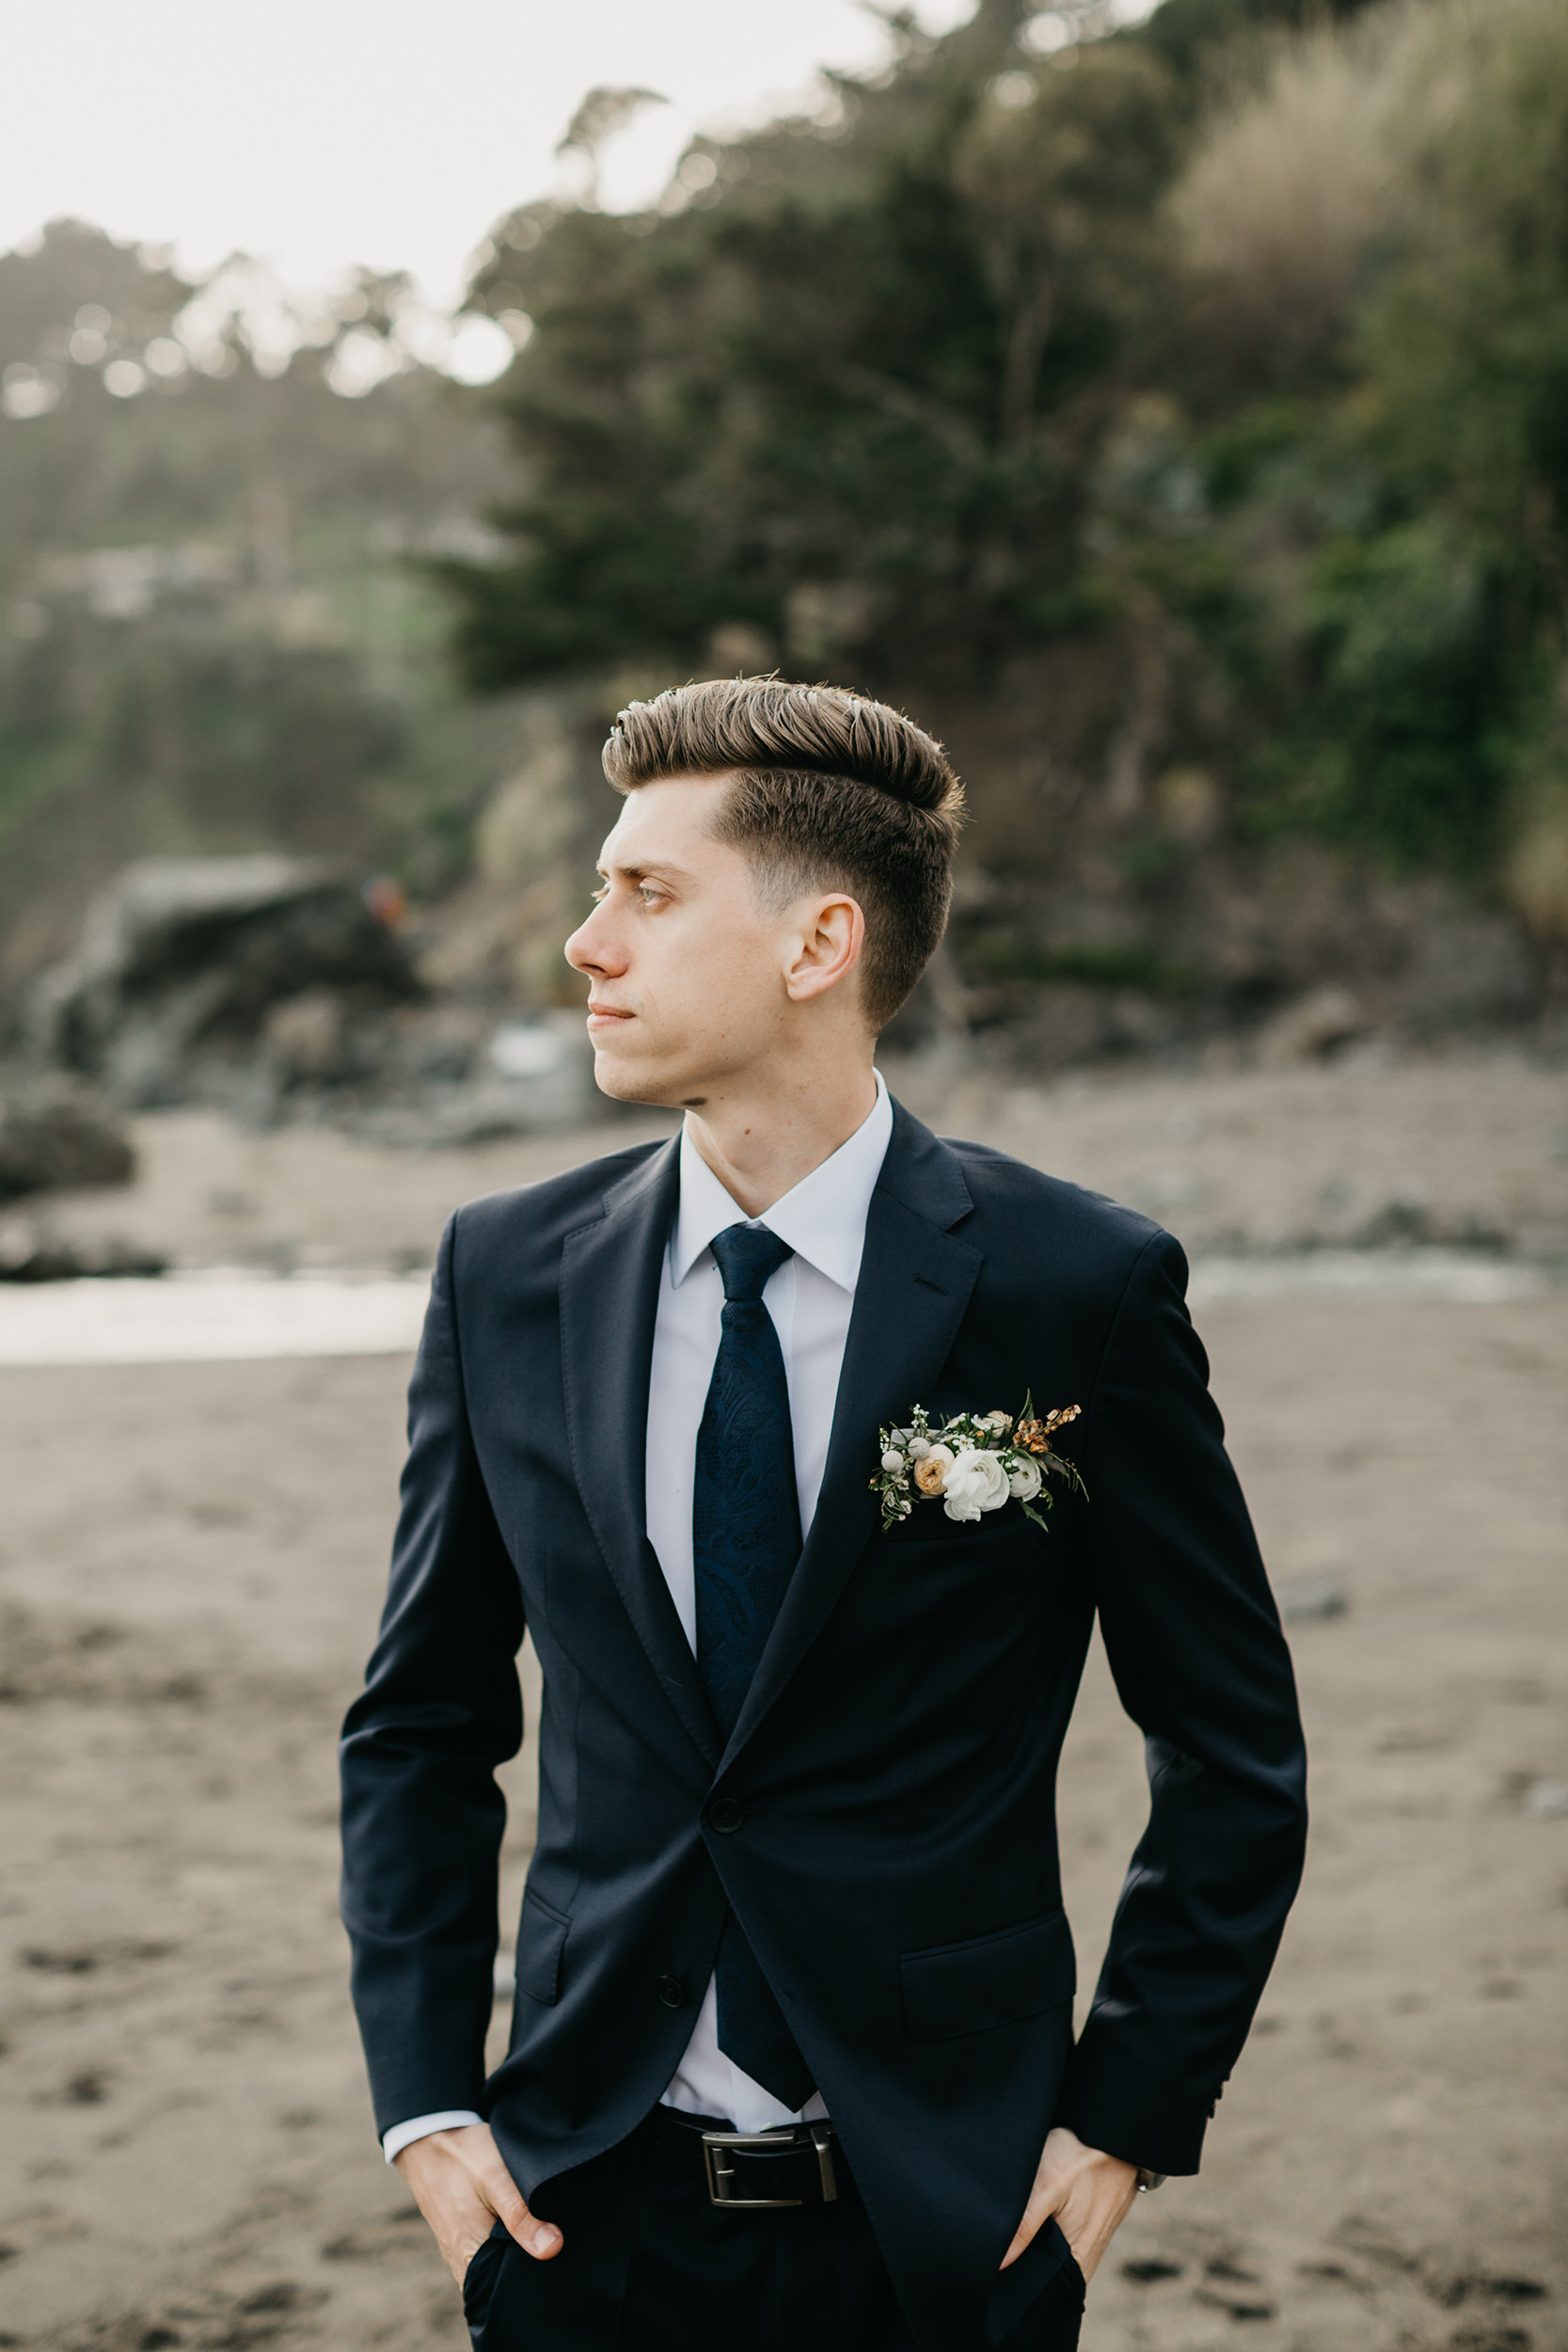 Violette-fleurs-event-design-roseville-Nelli-noel-photography-the-falls-event-center-Groom-details-pocket-square-ocean.jpg